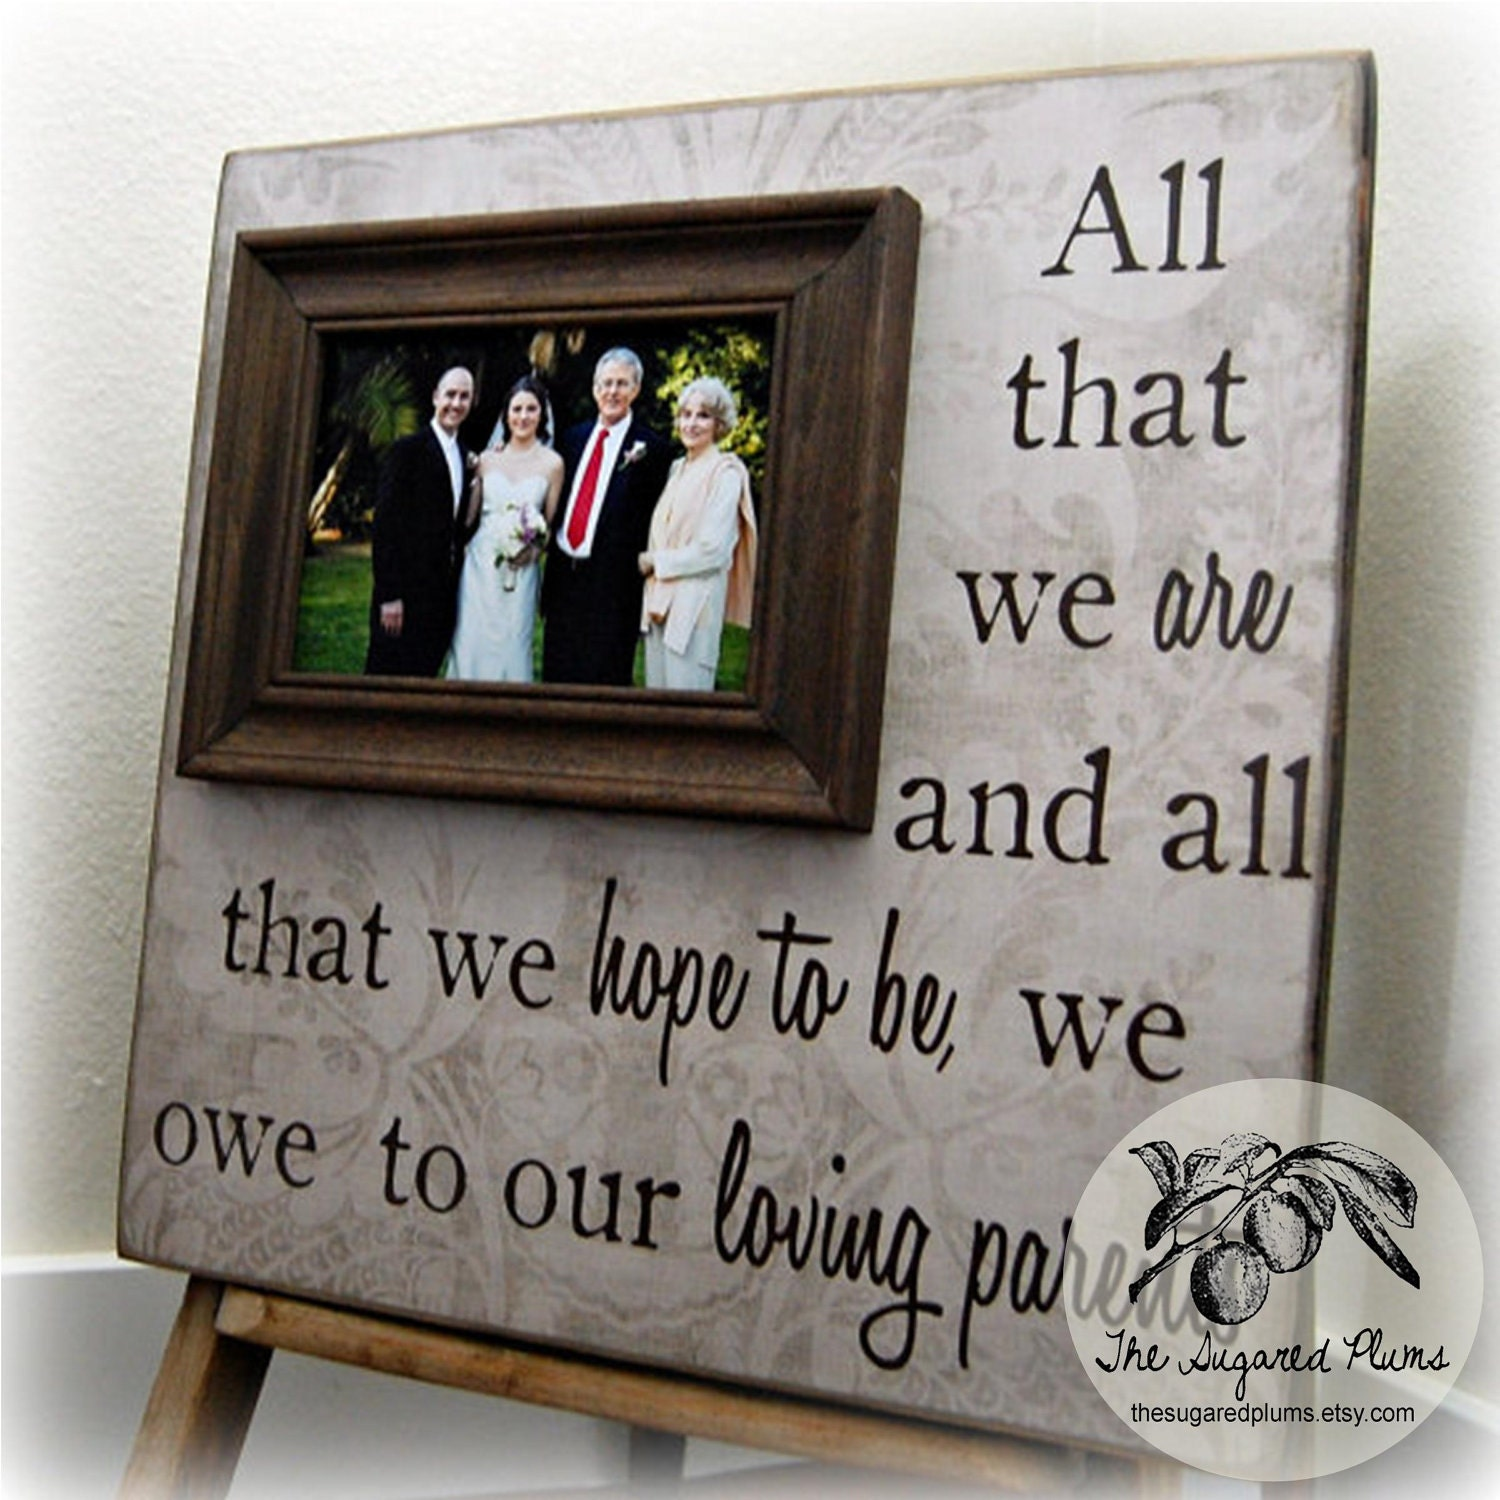 Parent Wedding Gifts Thank You: All That We Are All That We Hope To Be Thank You Gift For